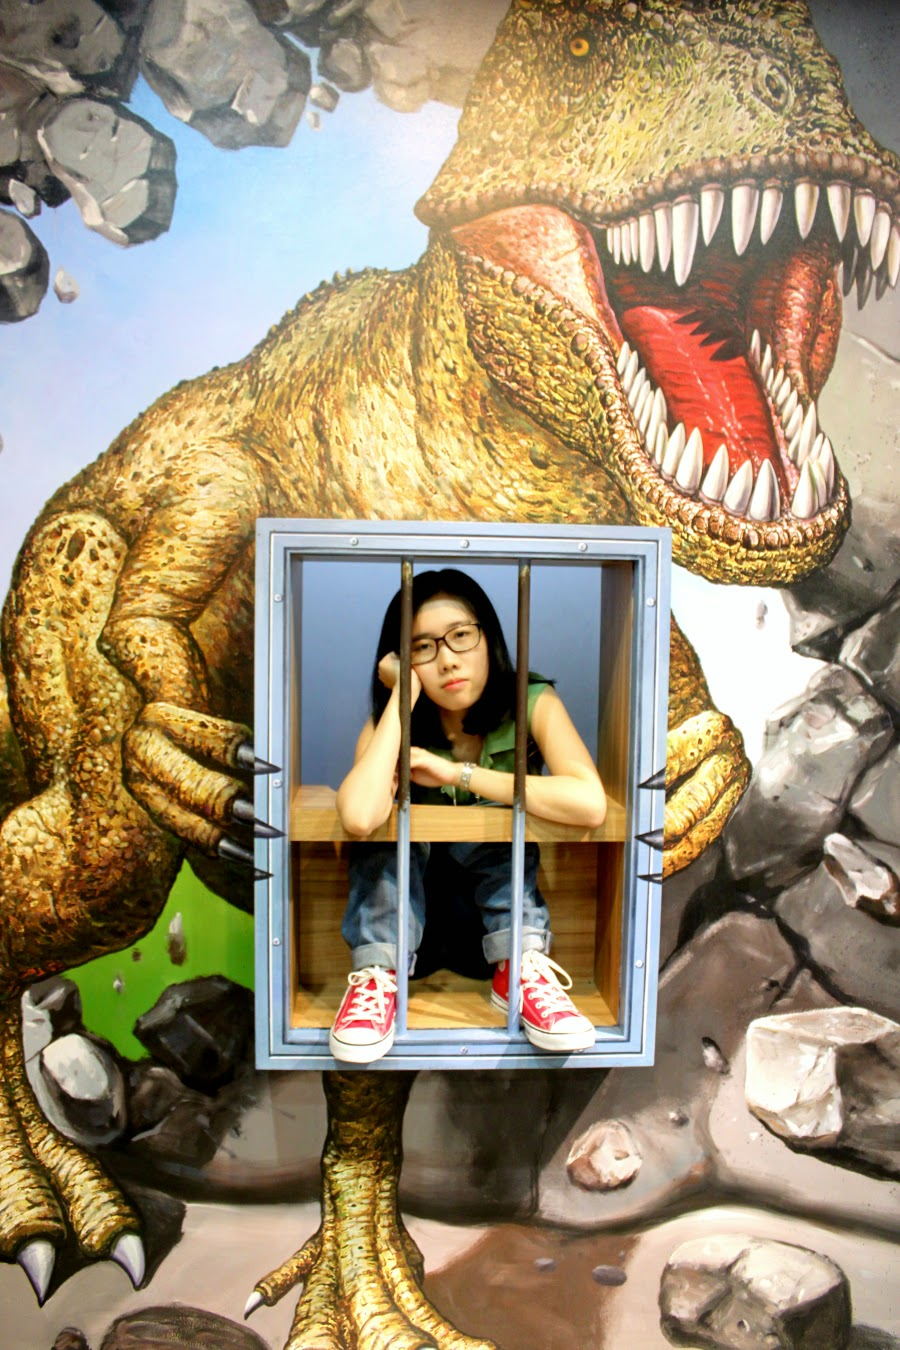 rws, TIN, trick eye museum, your xincerely, singapore blogger